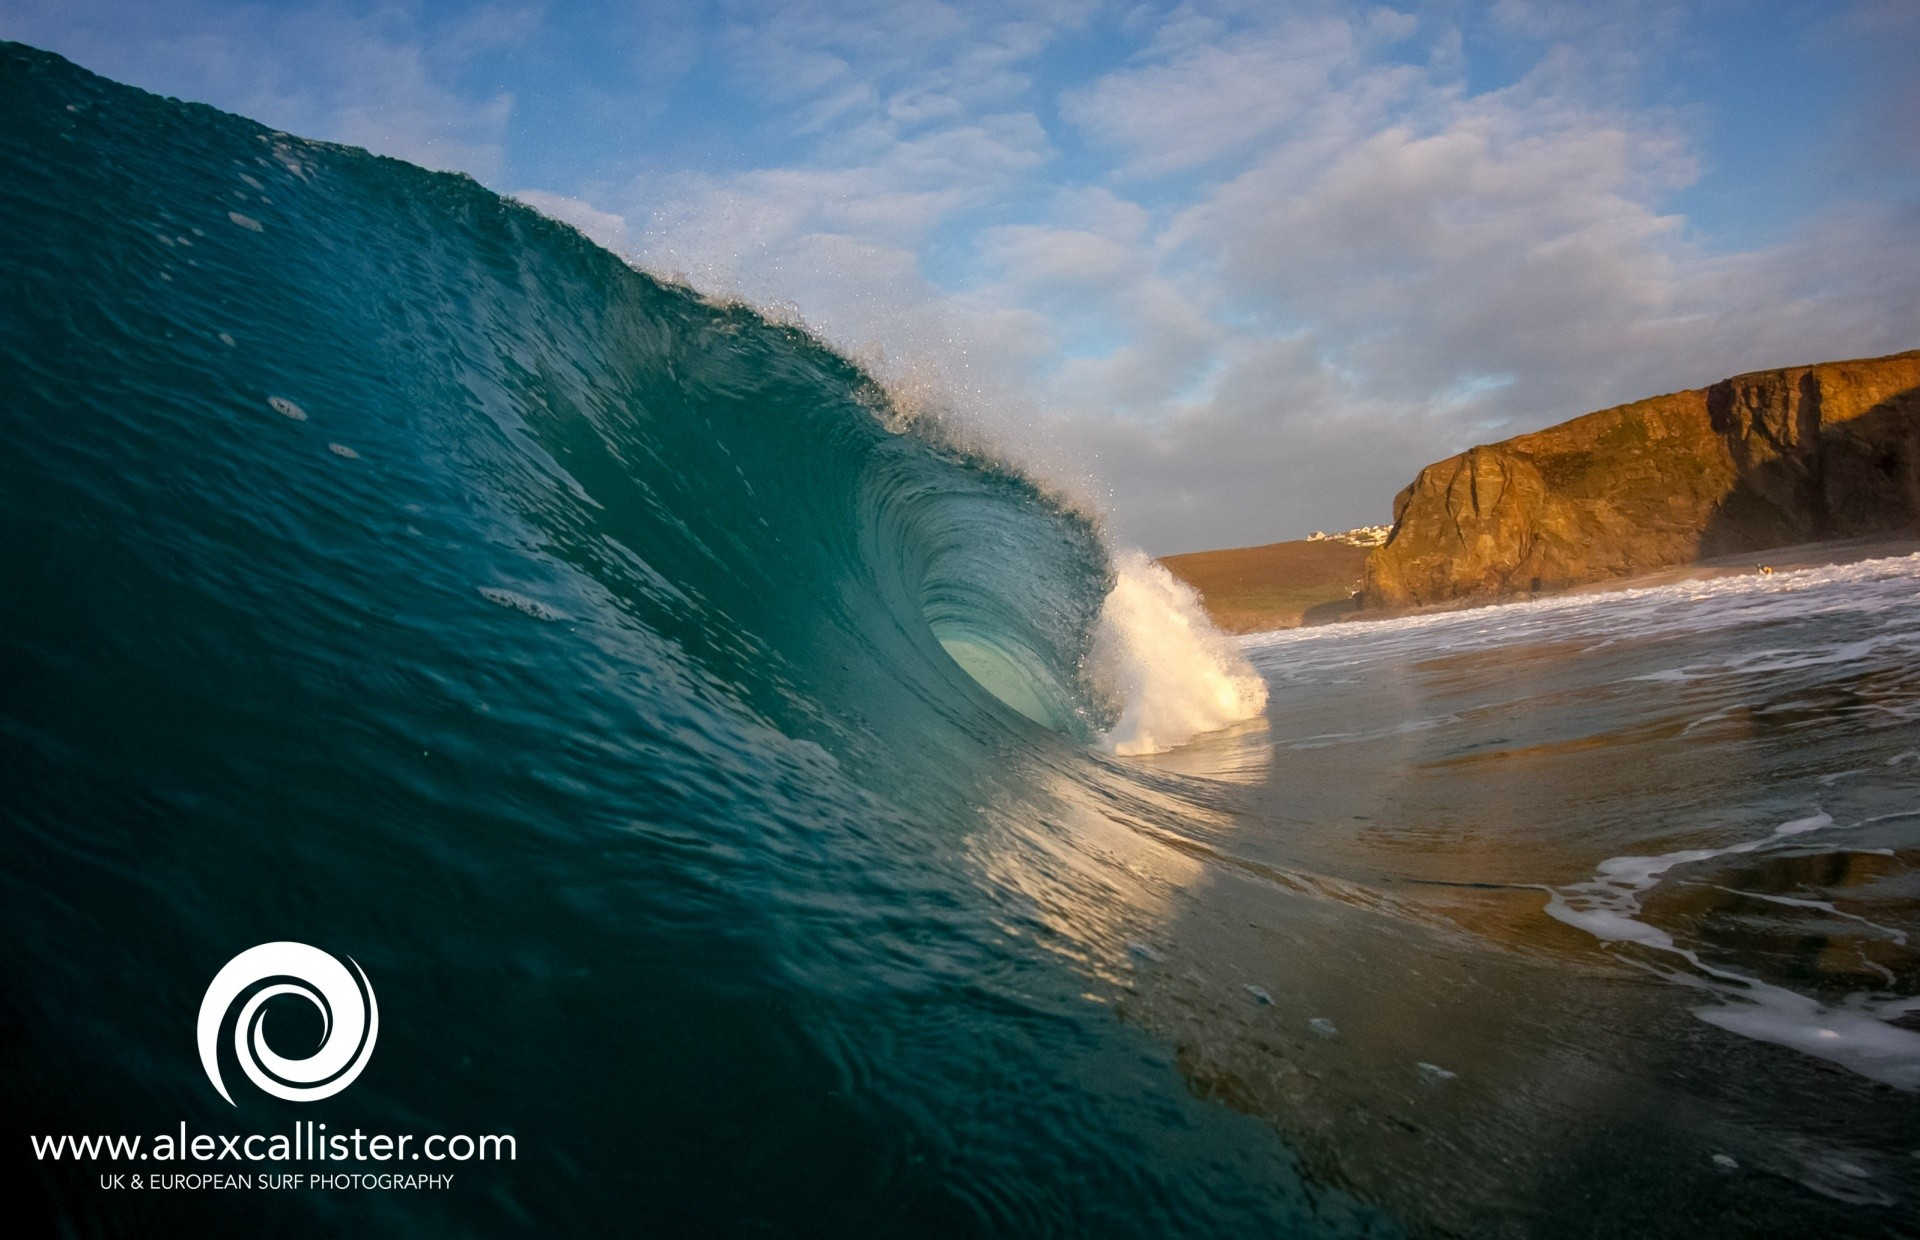 Alex Callister's photo of Porthtowan